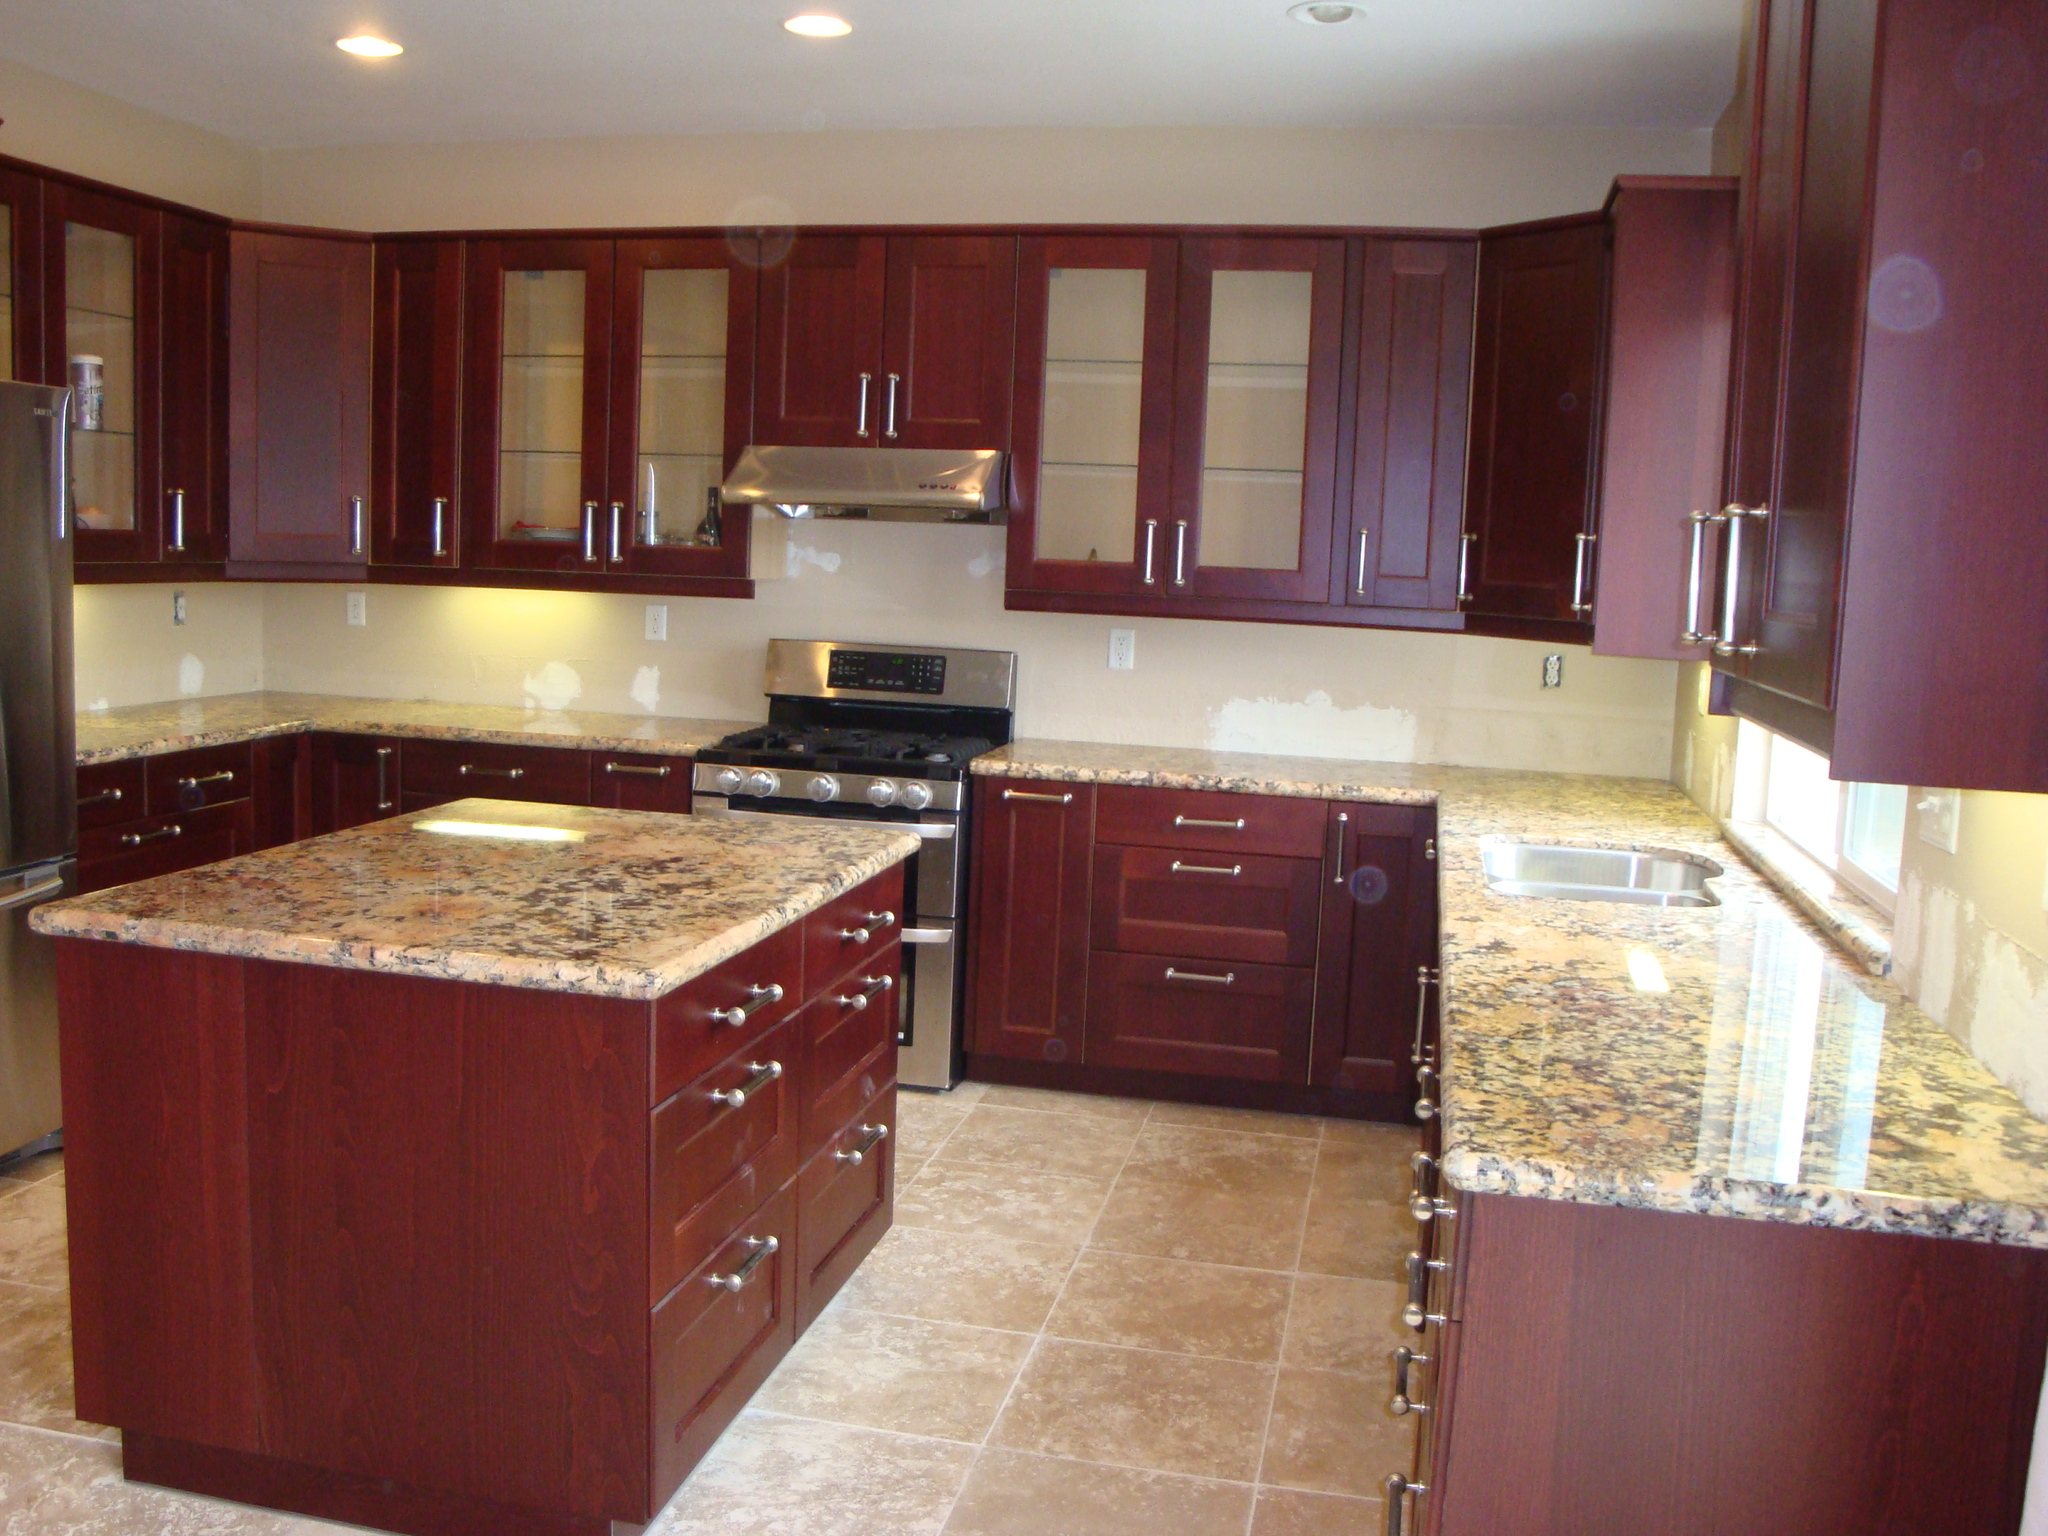 Diamond Flower Granite Counter Tops & Cherry Shaker Cabinets | Santa Clarita